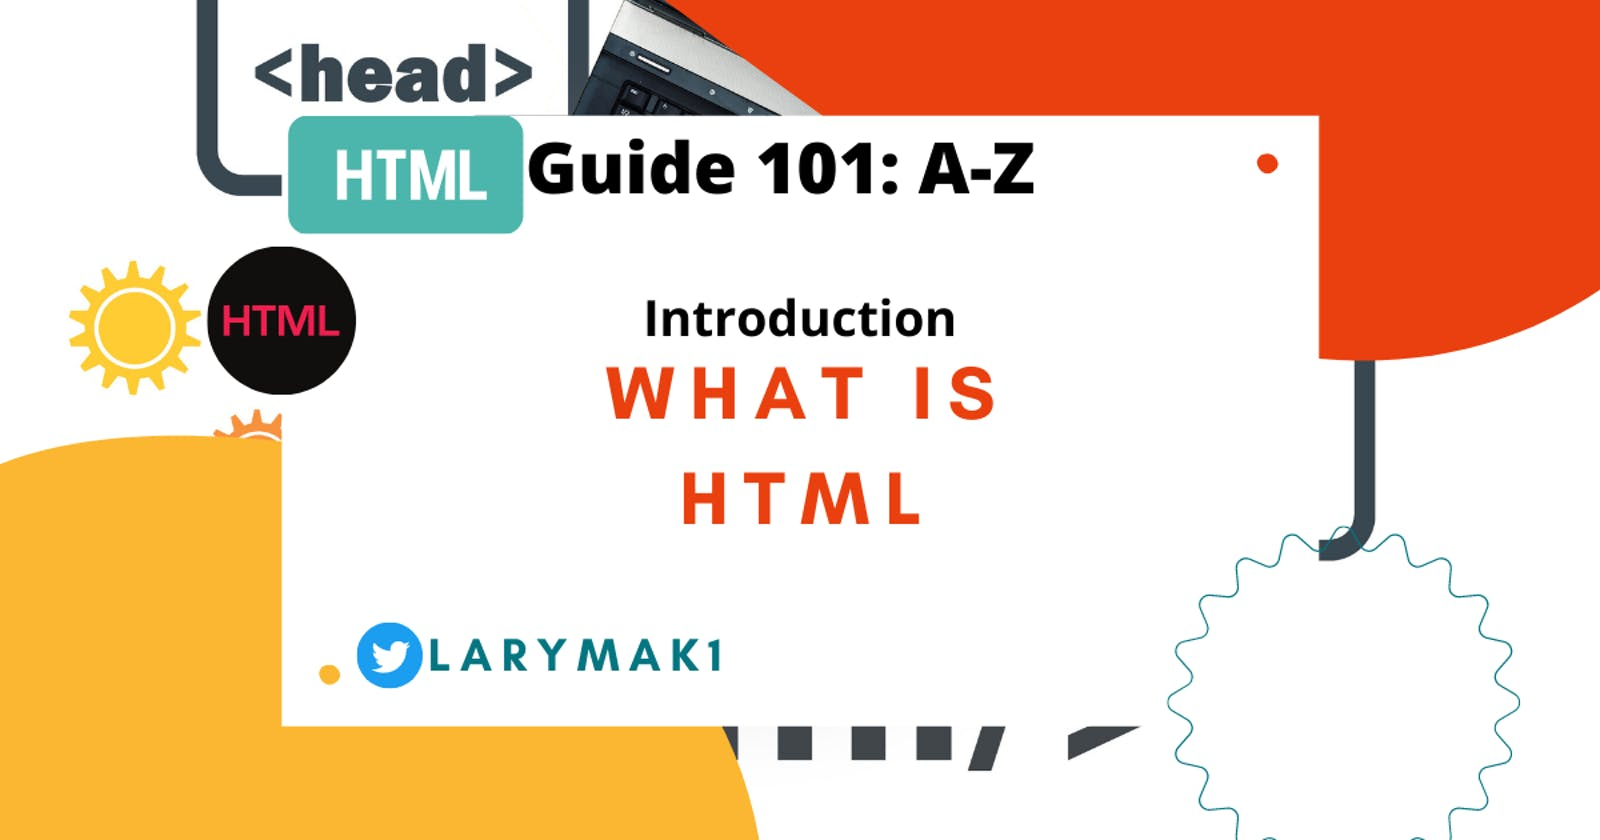 Introduction to HTML - What is HTML?